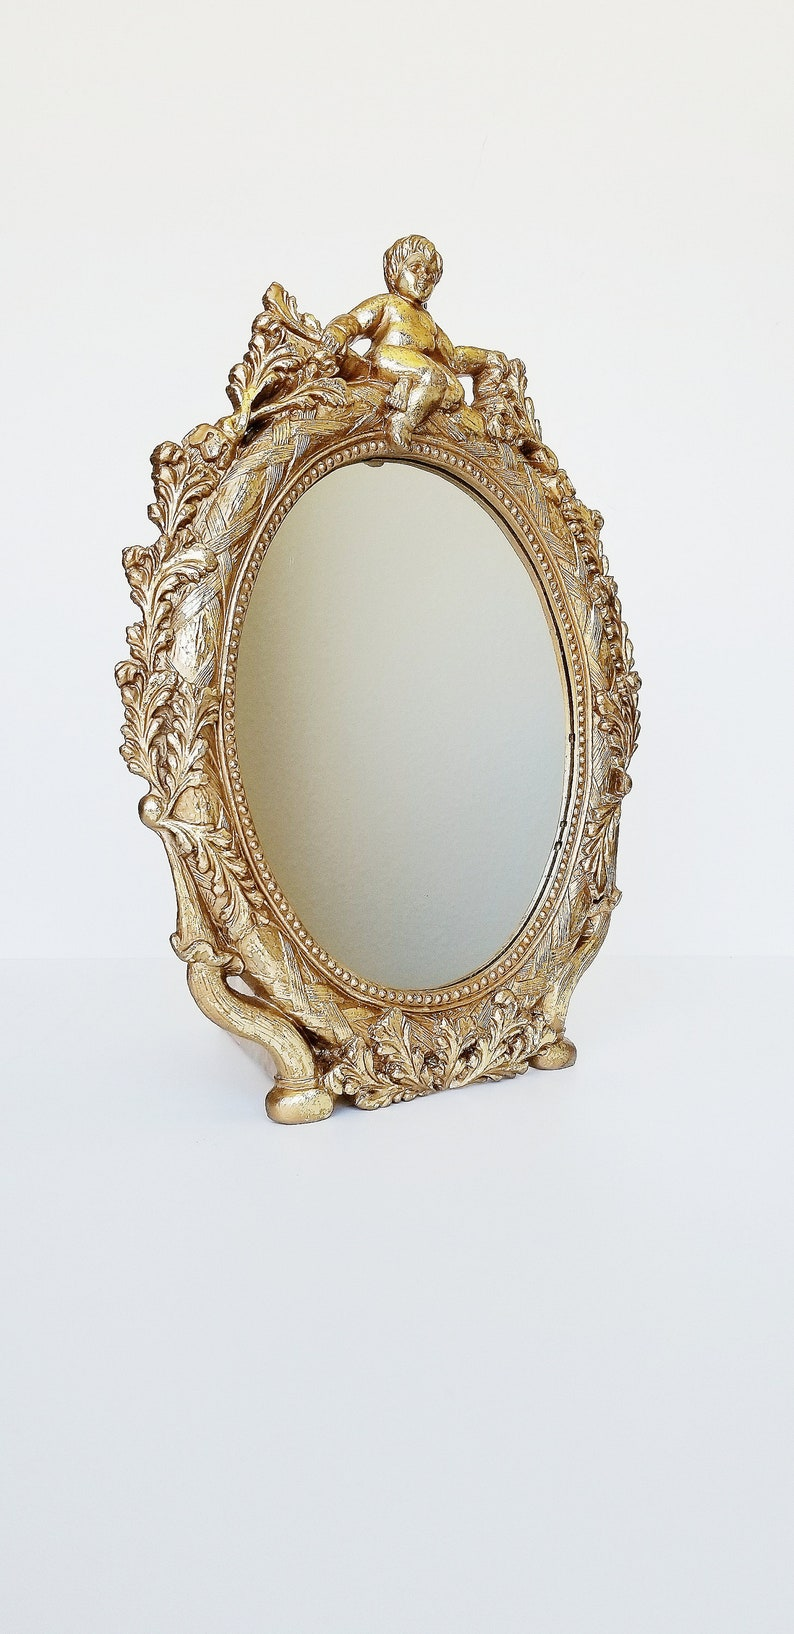 Gold Gilt Ornate Cherub Hollywood Regency Mirror Brass Gold image 0